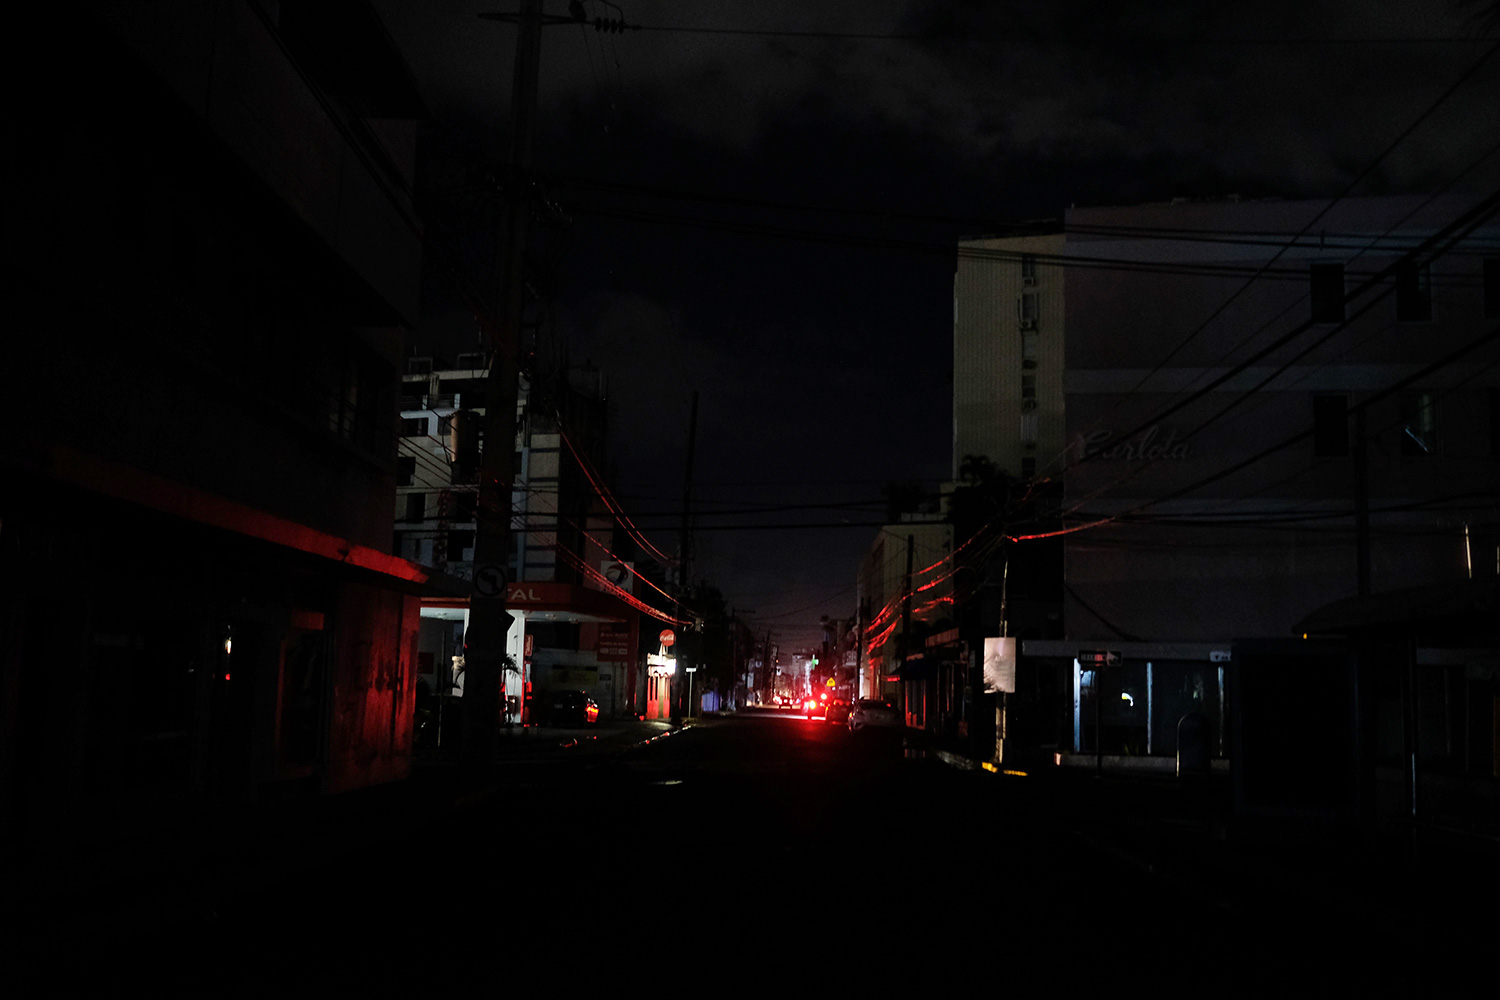 San Juan is plunged in darkness after a 6.4 earthquake rattled Puerto Rico early January 7, 2020 leaving the island largely without power